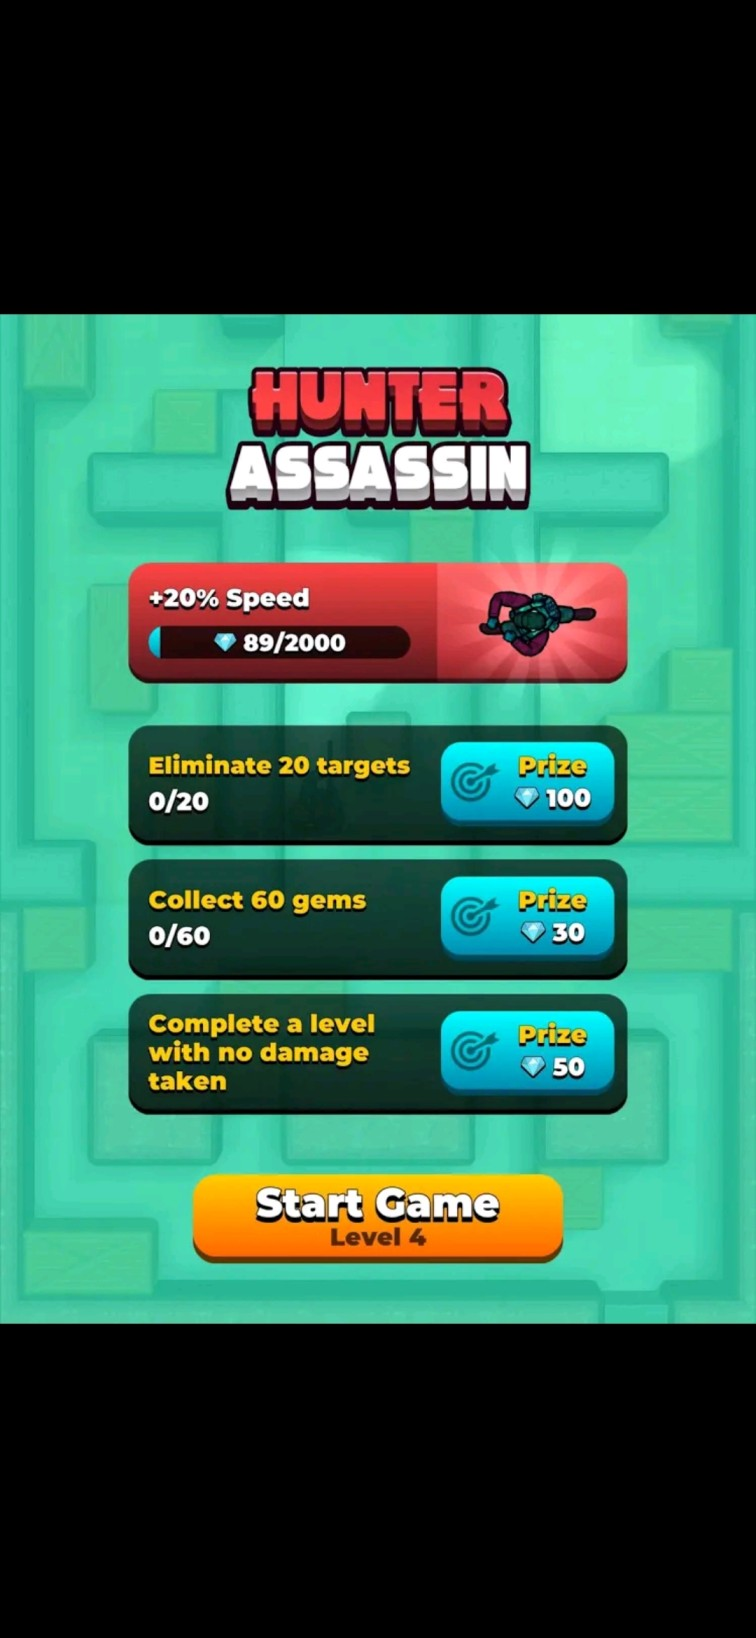 assassin hunter mod apk download